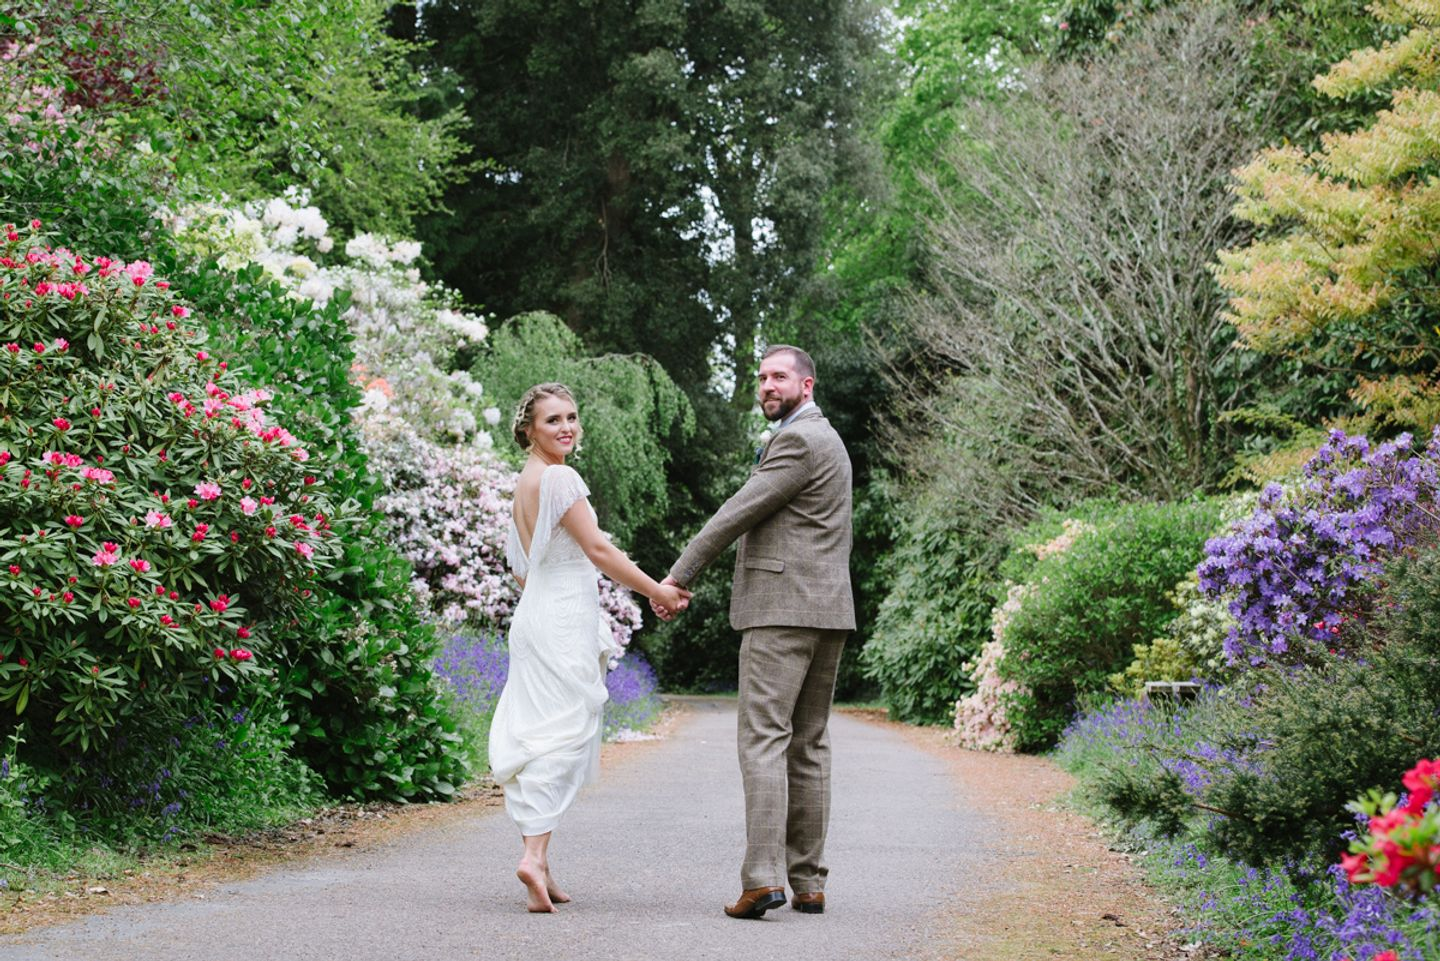 Bride and groom look back towards camera walking through Cornish country house gardens